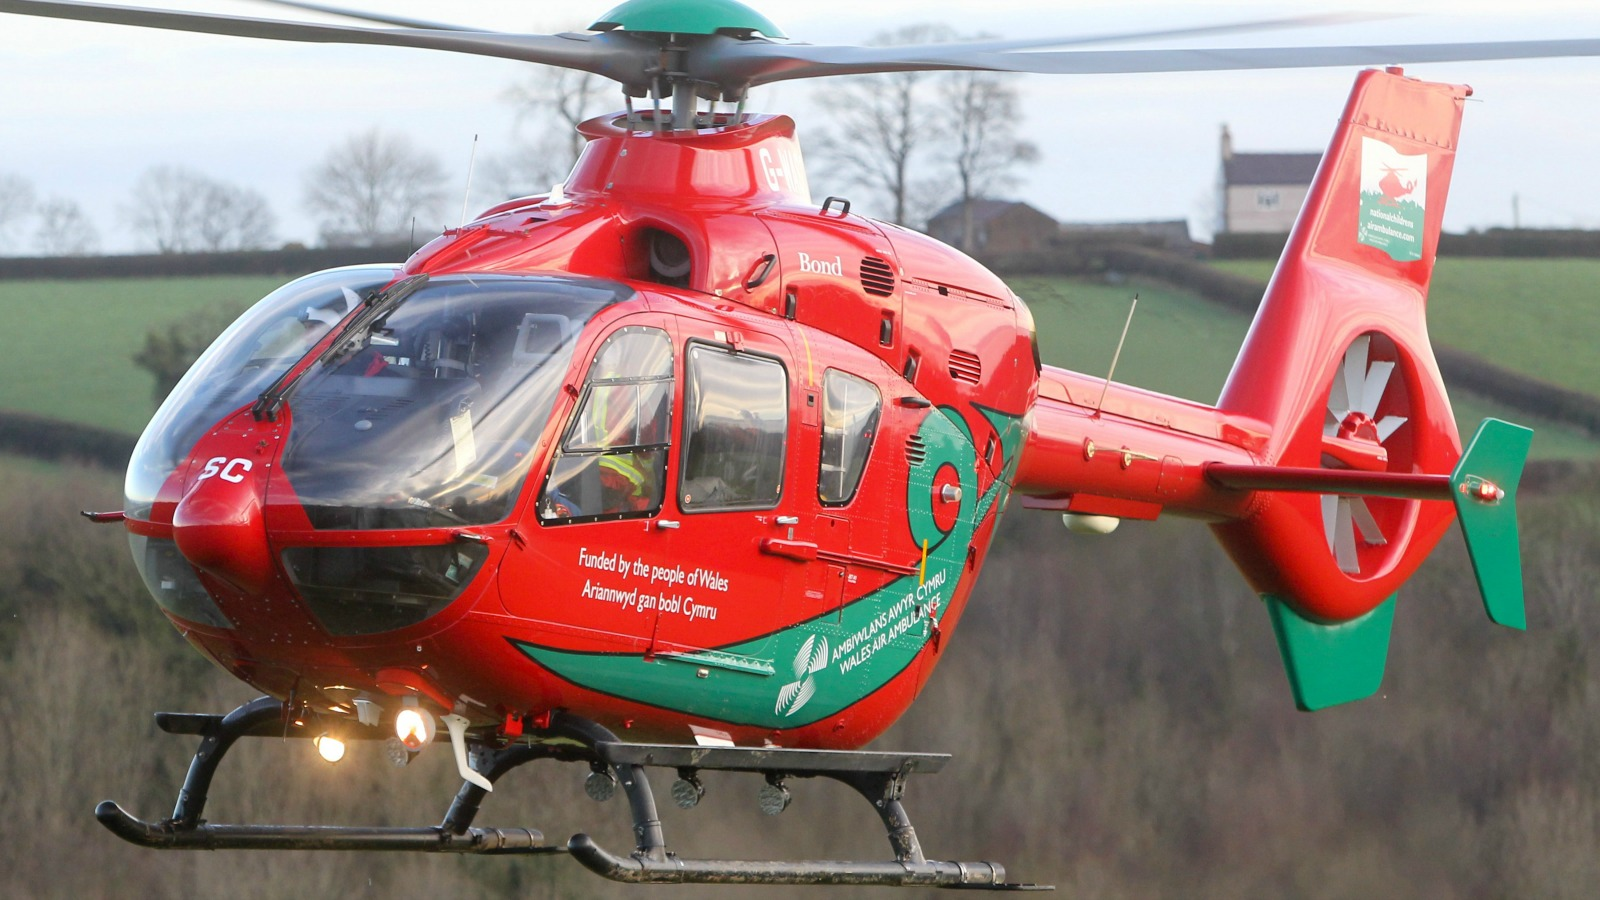 Air Ambulance spotted over Milford after crash on the Dale Road